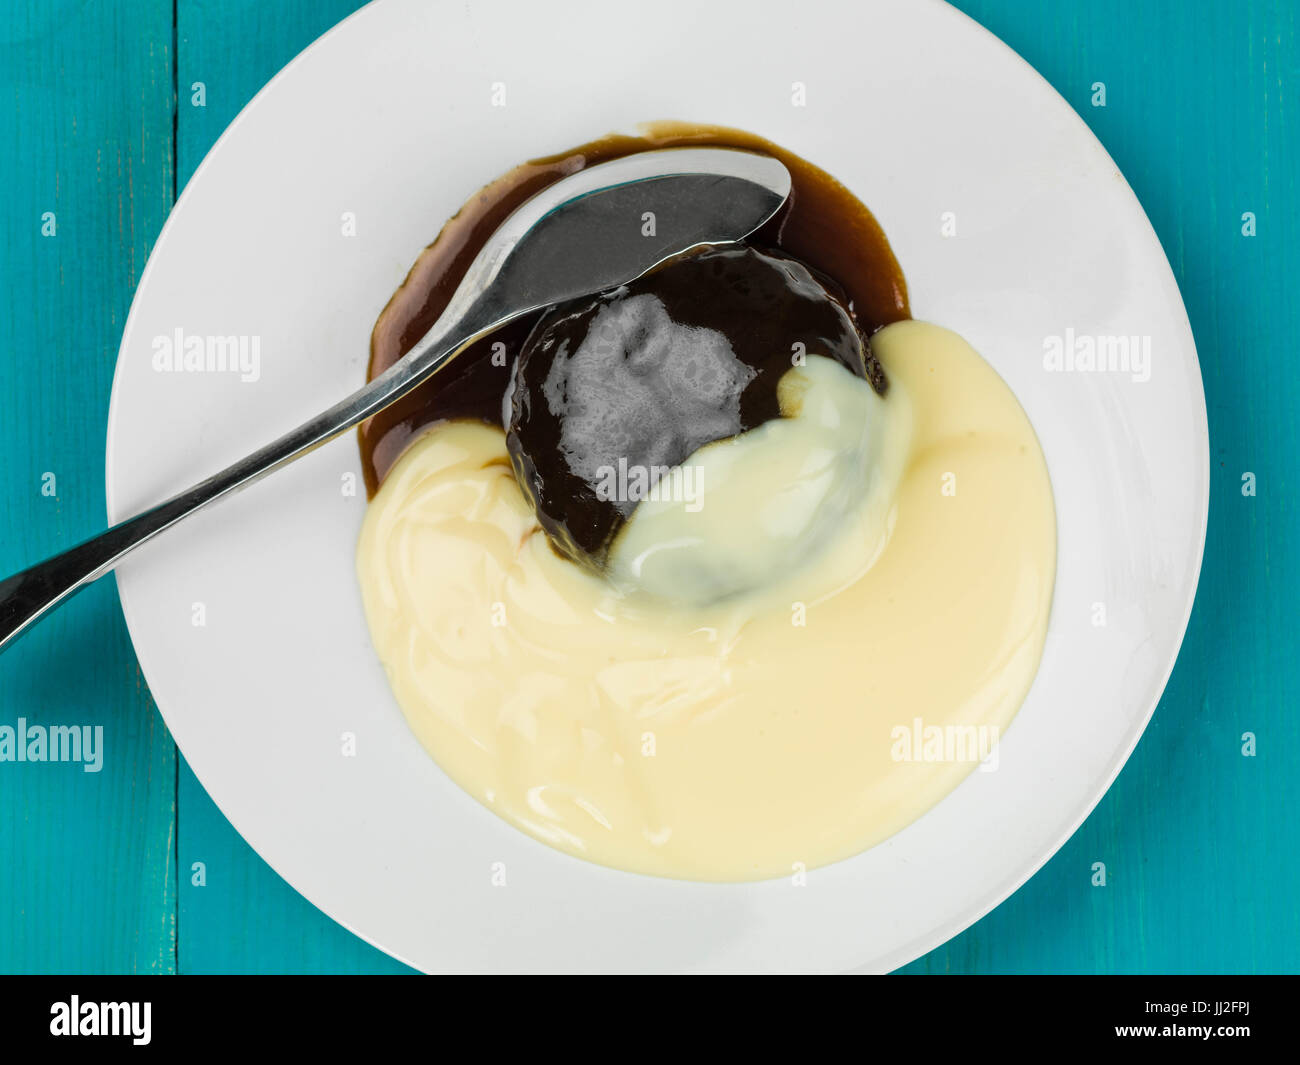 Sticky Toffee Pudding Dessert Served With Hot Custard Against a Blue Wooden Background - Stock Image